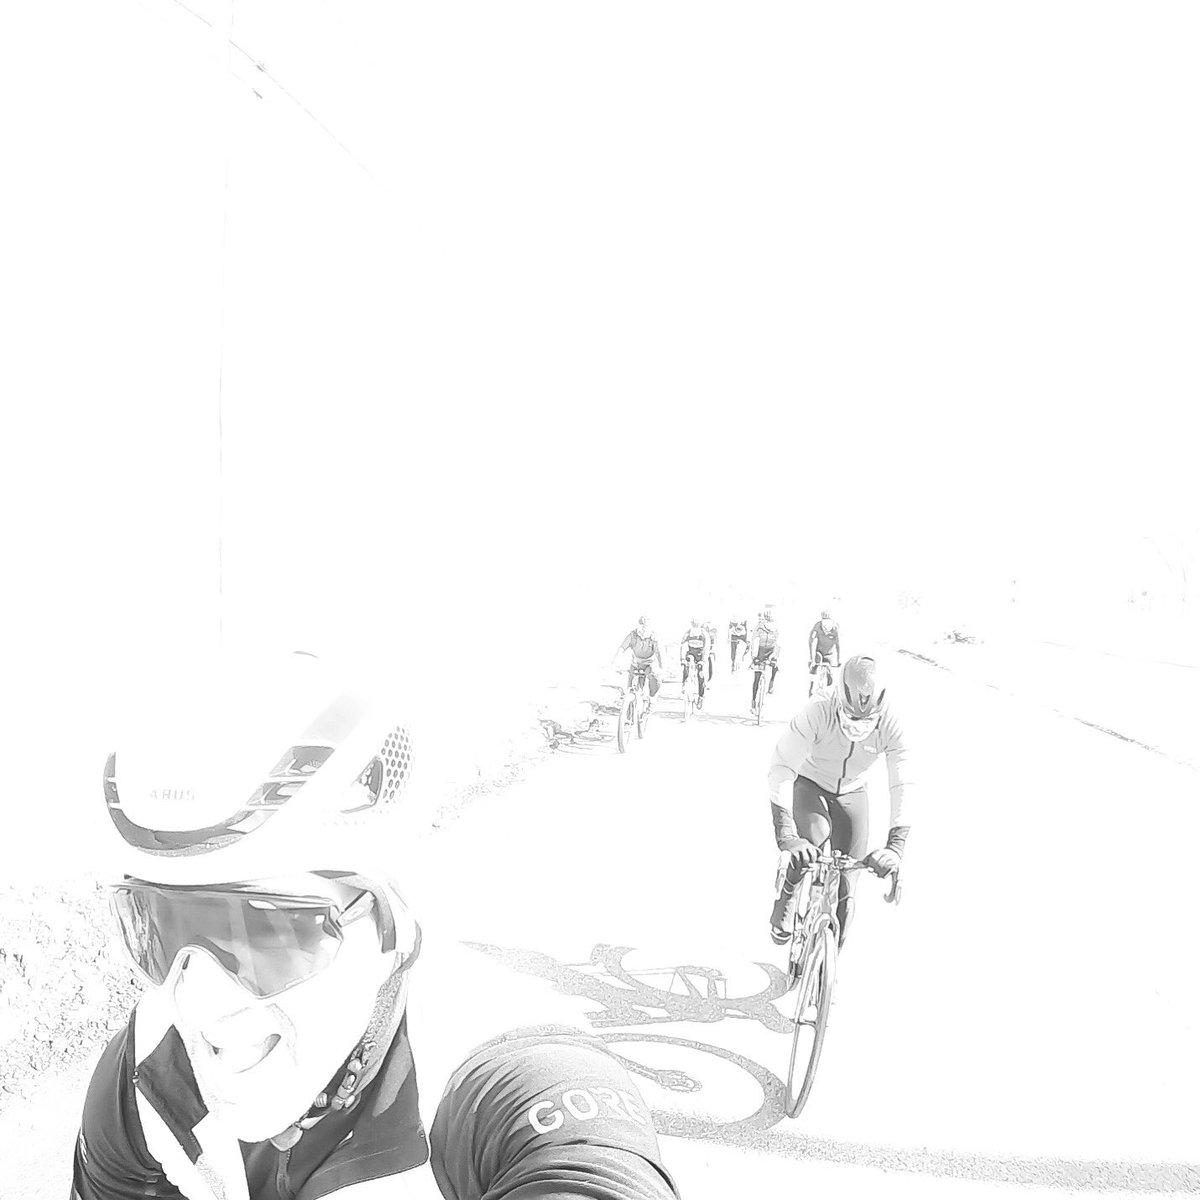 We rode bikes outside today & the sun felt amazing..., so bright it bleached out my pic, http://not.mad.at.it #iamspecialized #gorewear #februaryflahutes #bcfridesbikespic.twitter.com/cGGjN9MqBv